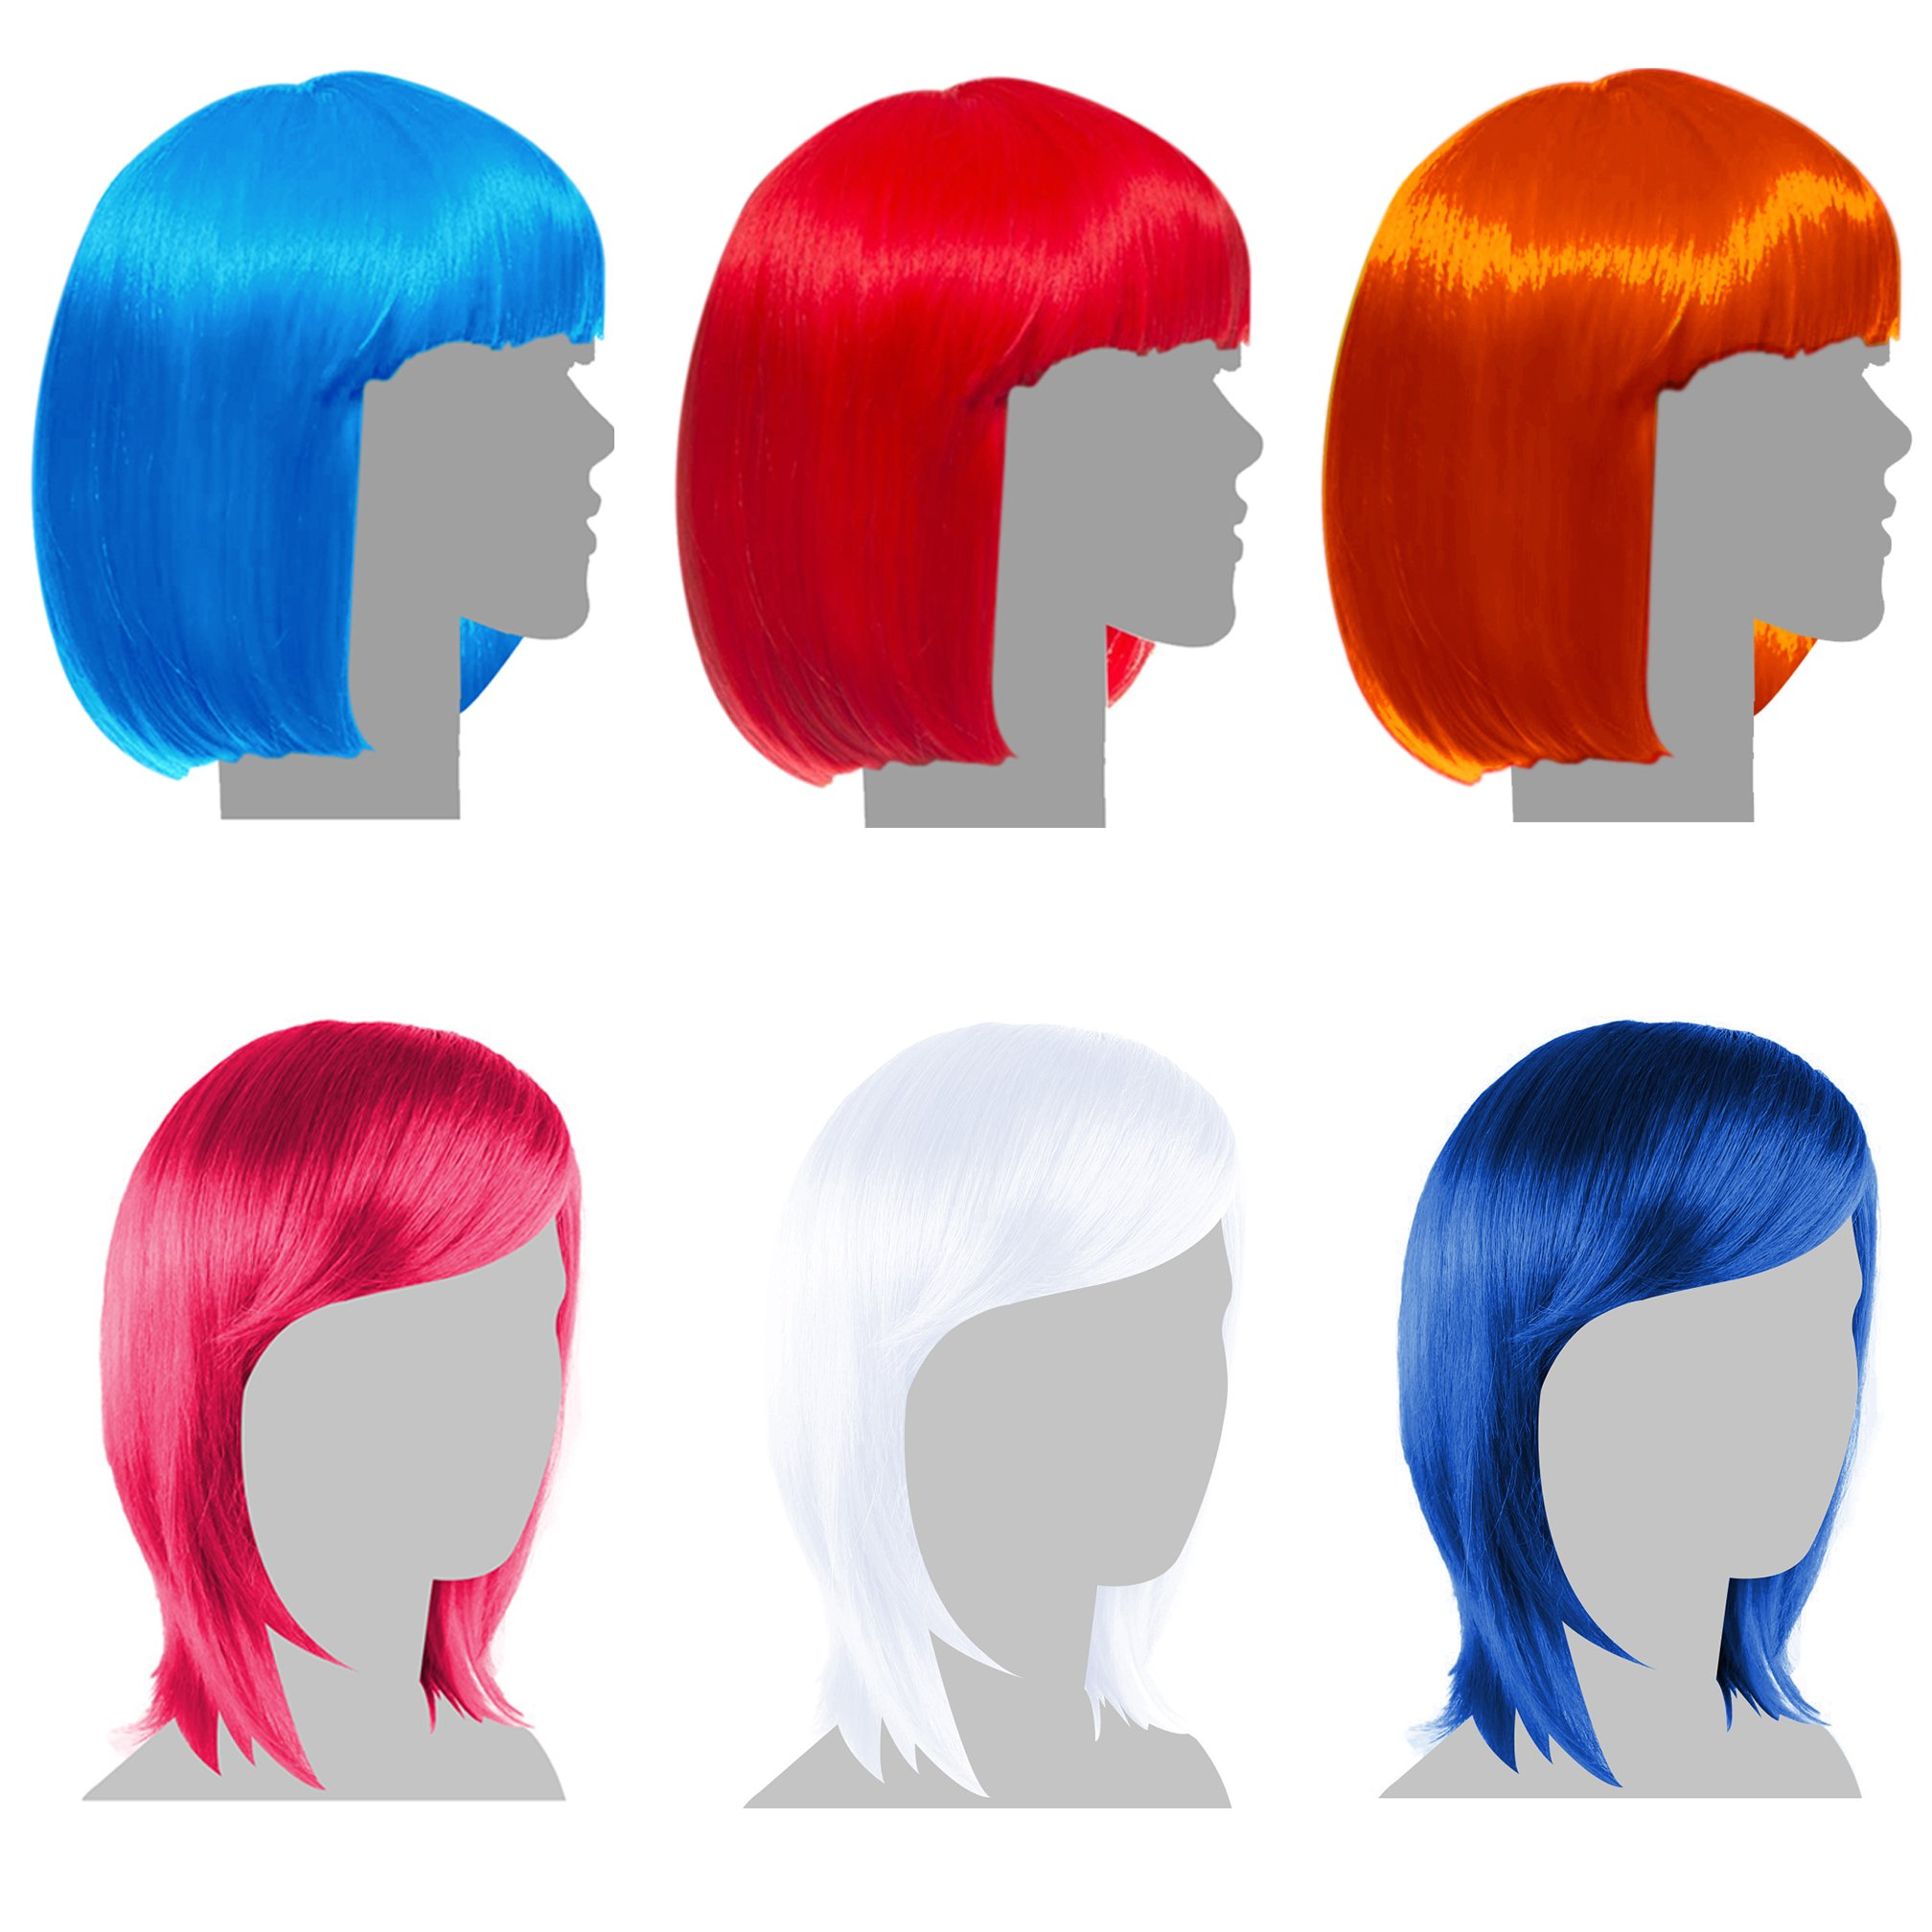 Sterling James Co. 6 Pack Party Wigs - Halloween Neon Colorful Wig Pack - Bachelorette Party Favors, Supplies, and Decorations by Sterling James Co.